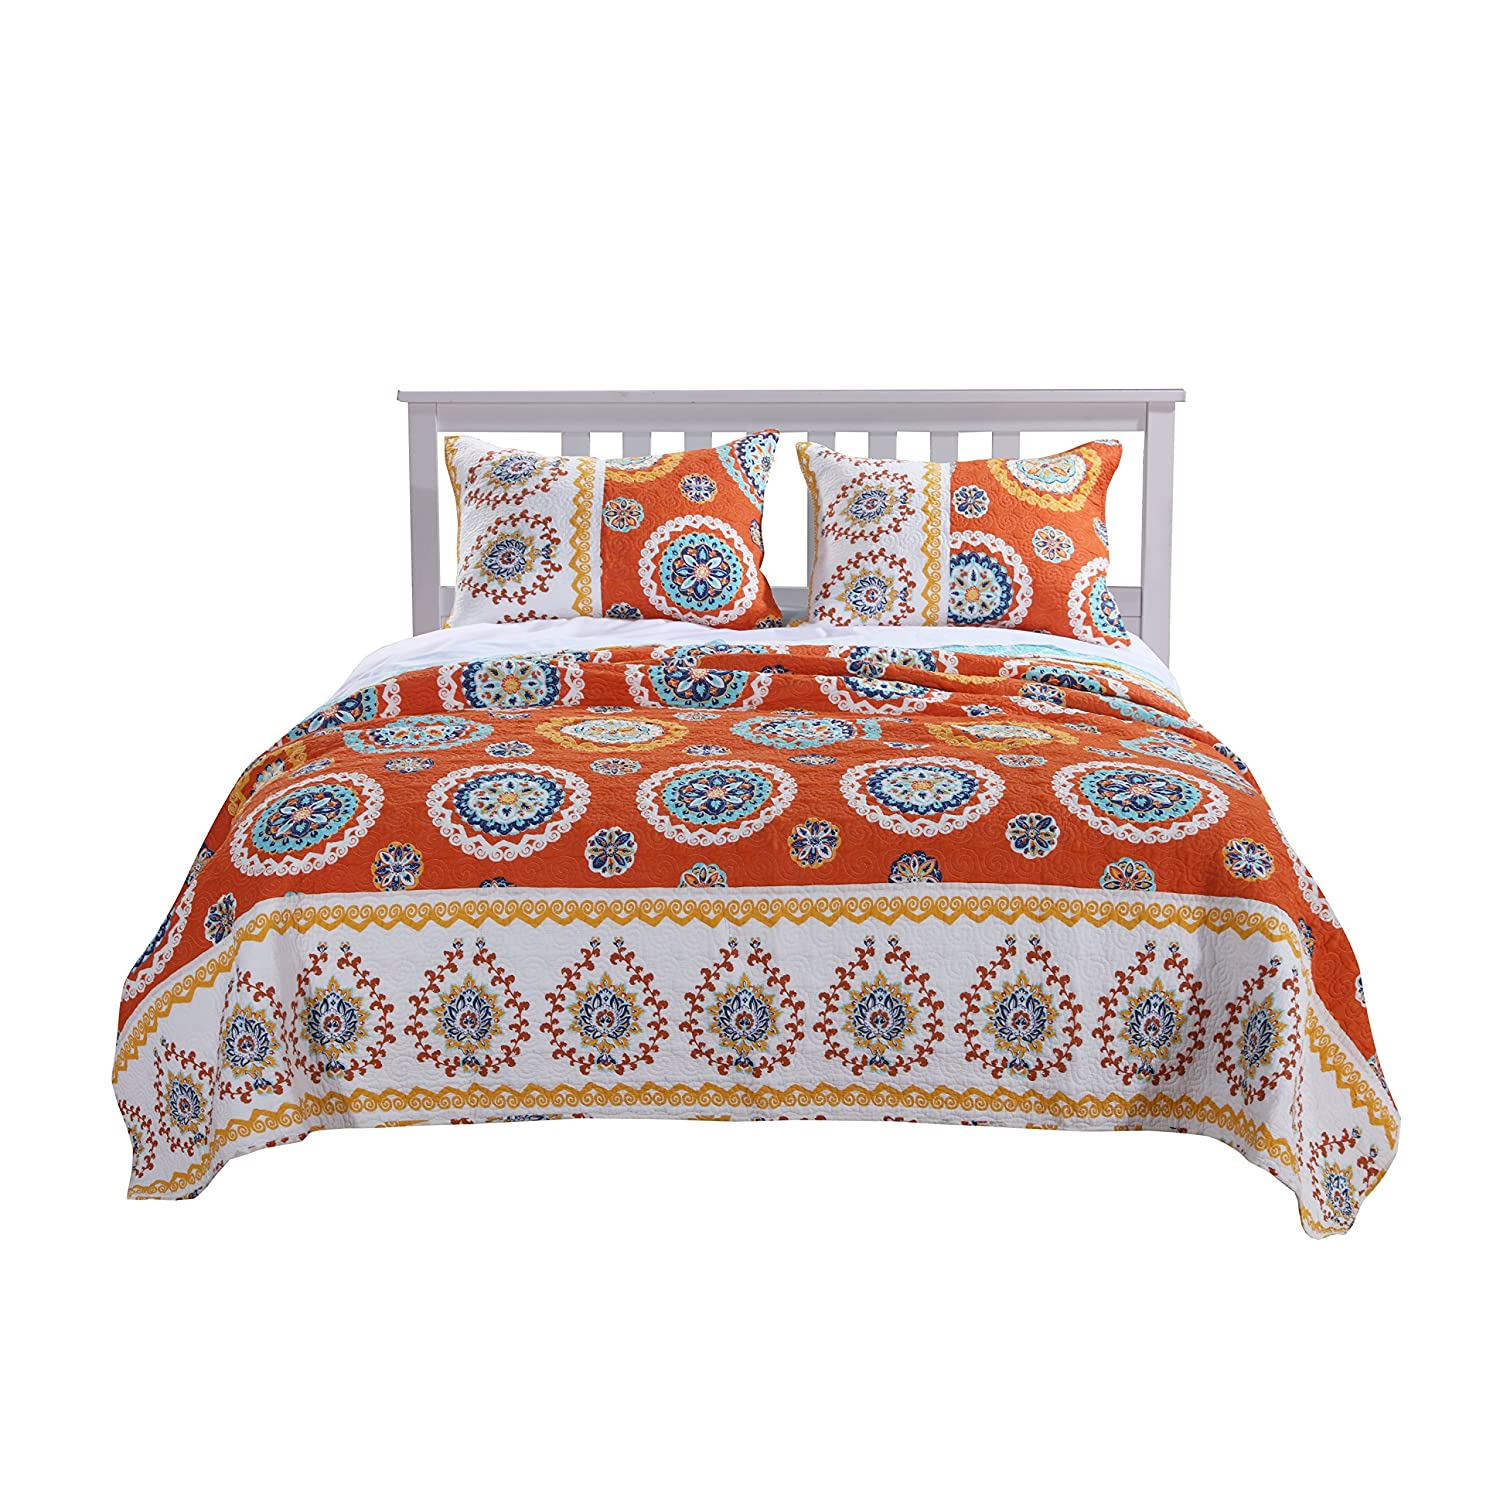 Barefoot Bungalow Rozario Quilt Set Twin Tangerine